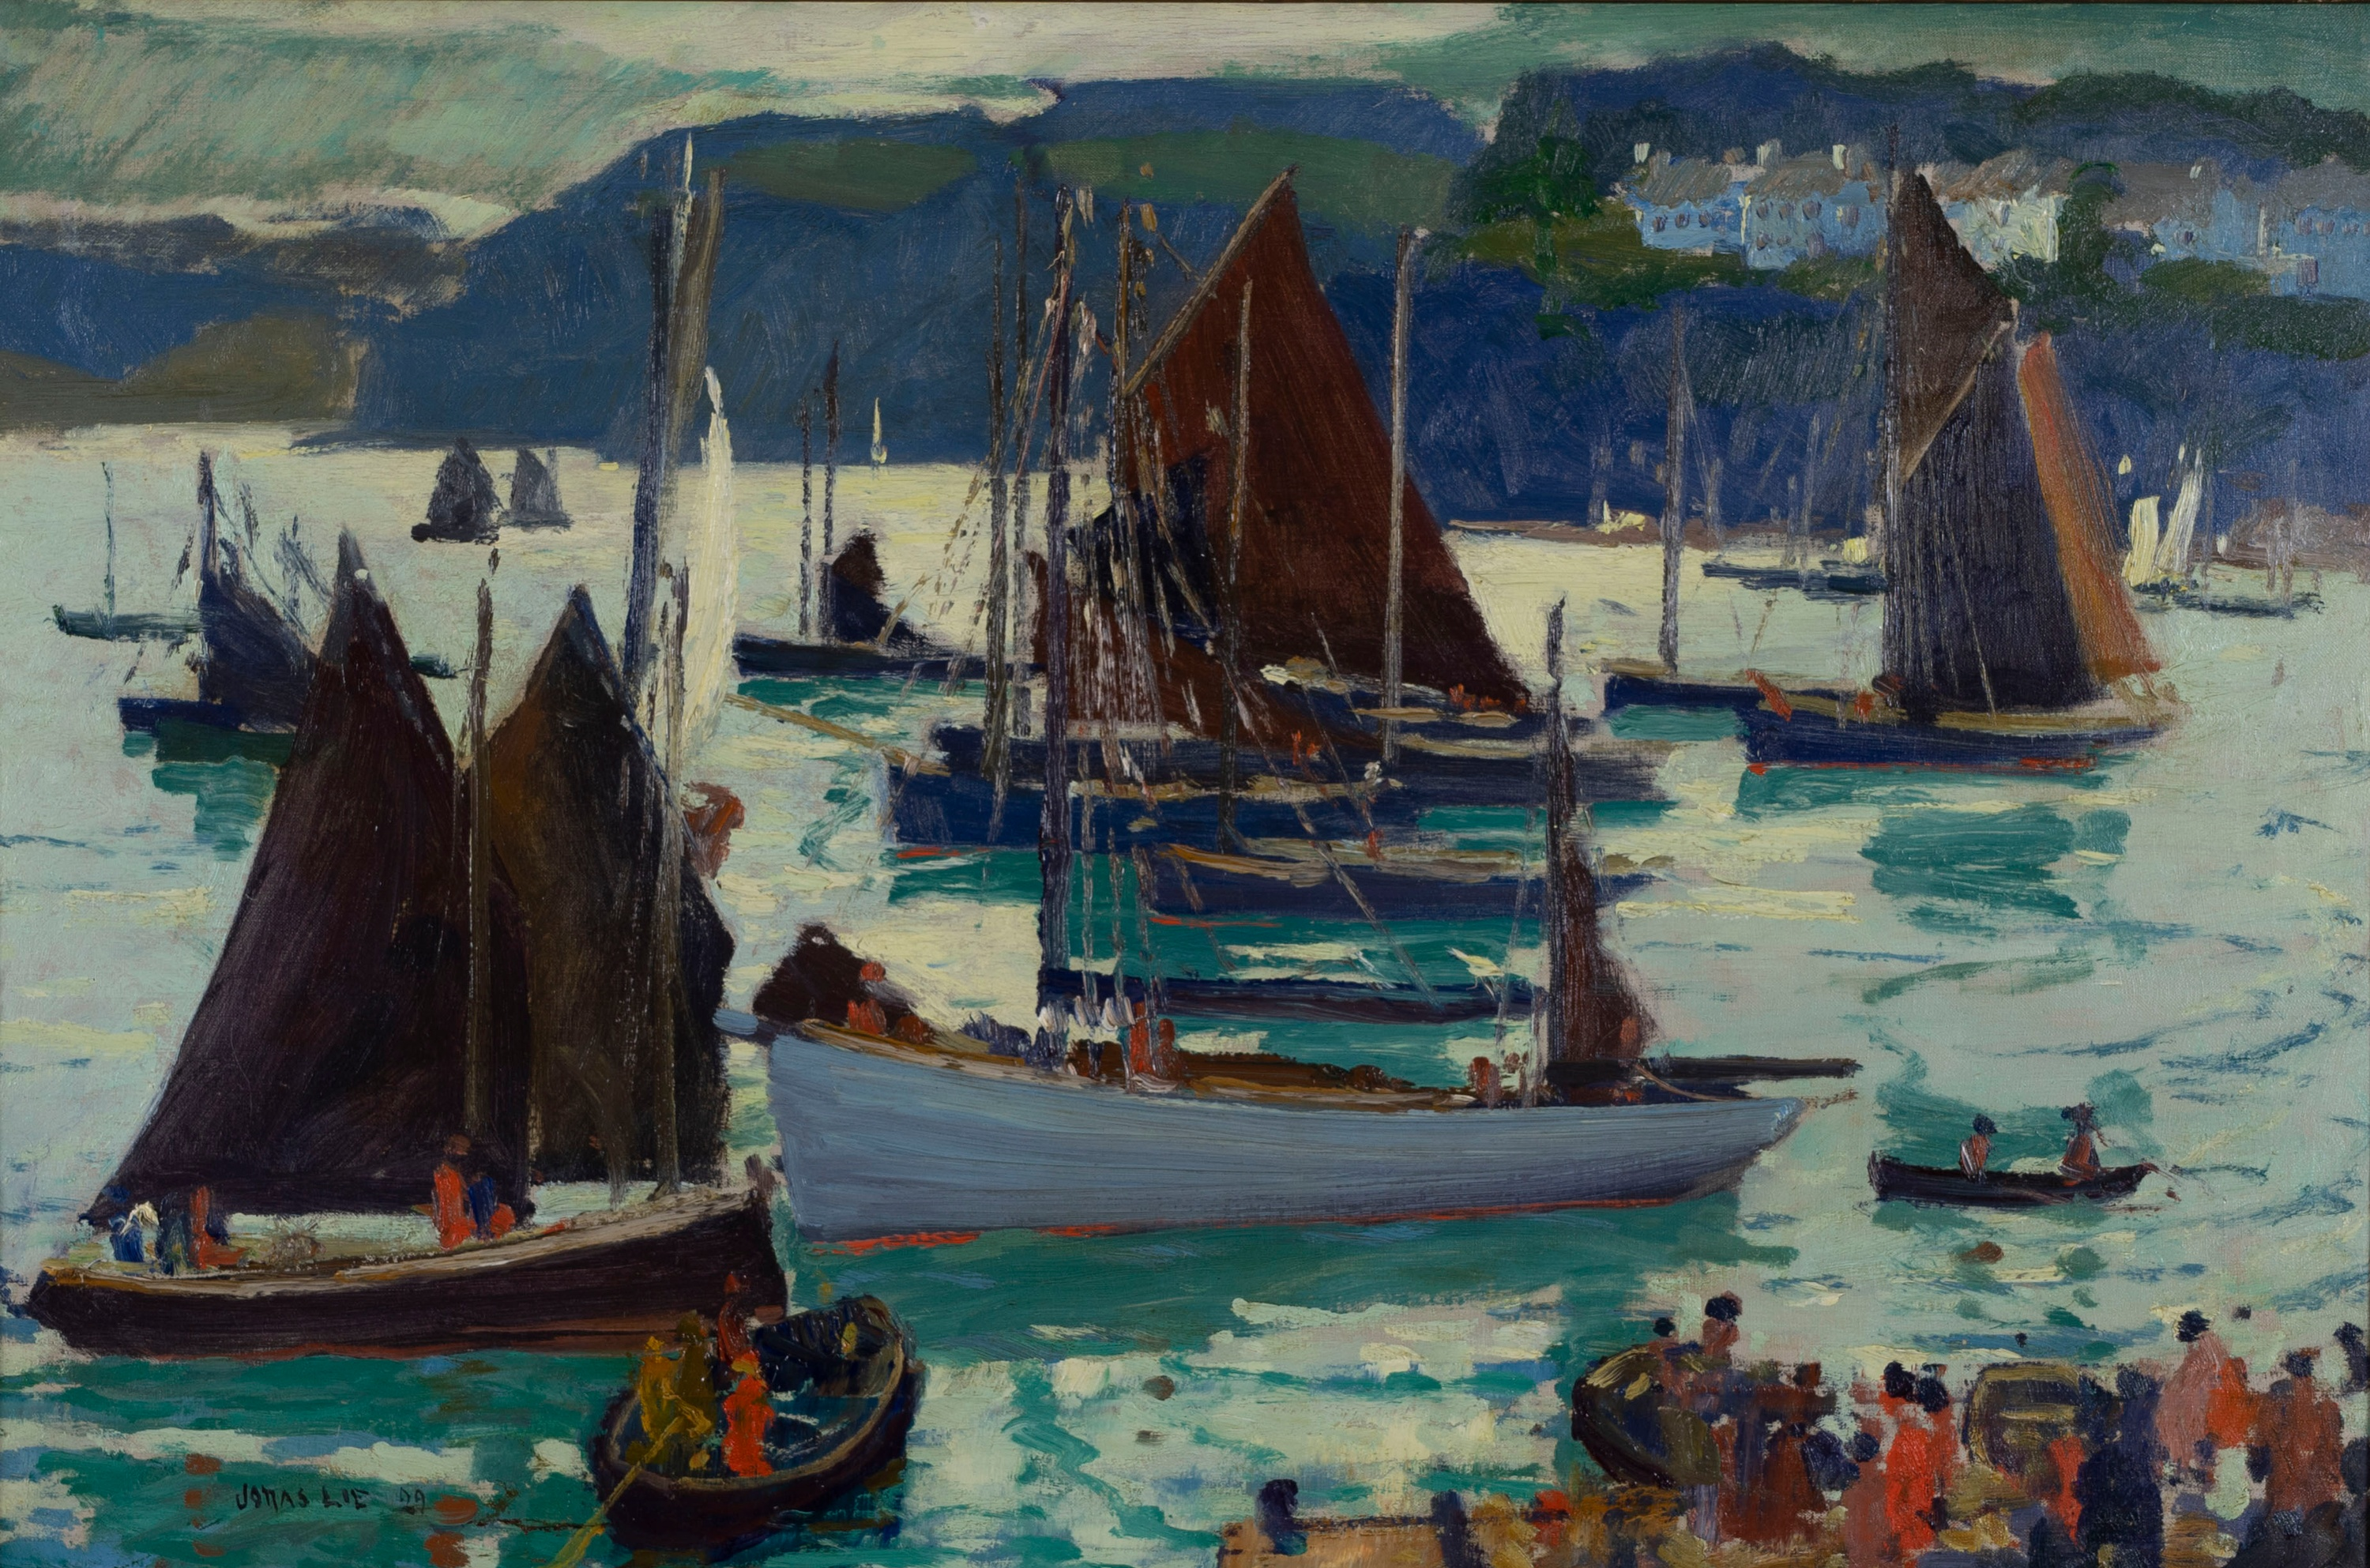 Jonas Lie, 1880-1940, Morning, Douarnenez, 1929, Oil On Canvas, Est. 15,000-25,000